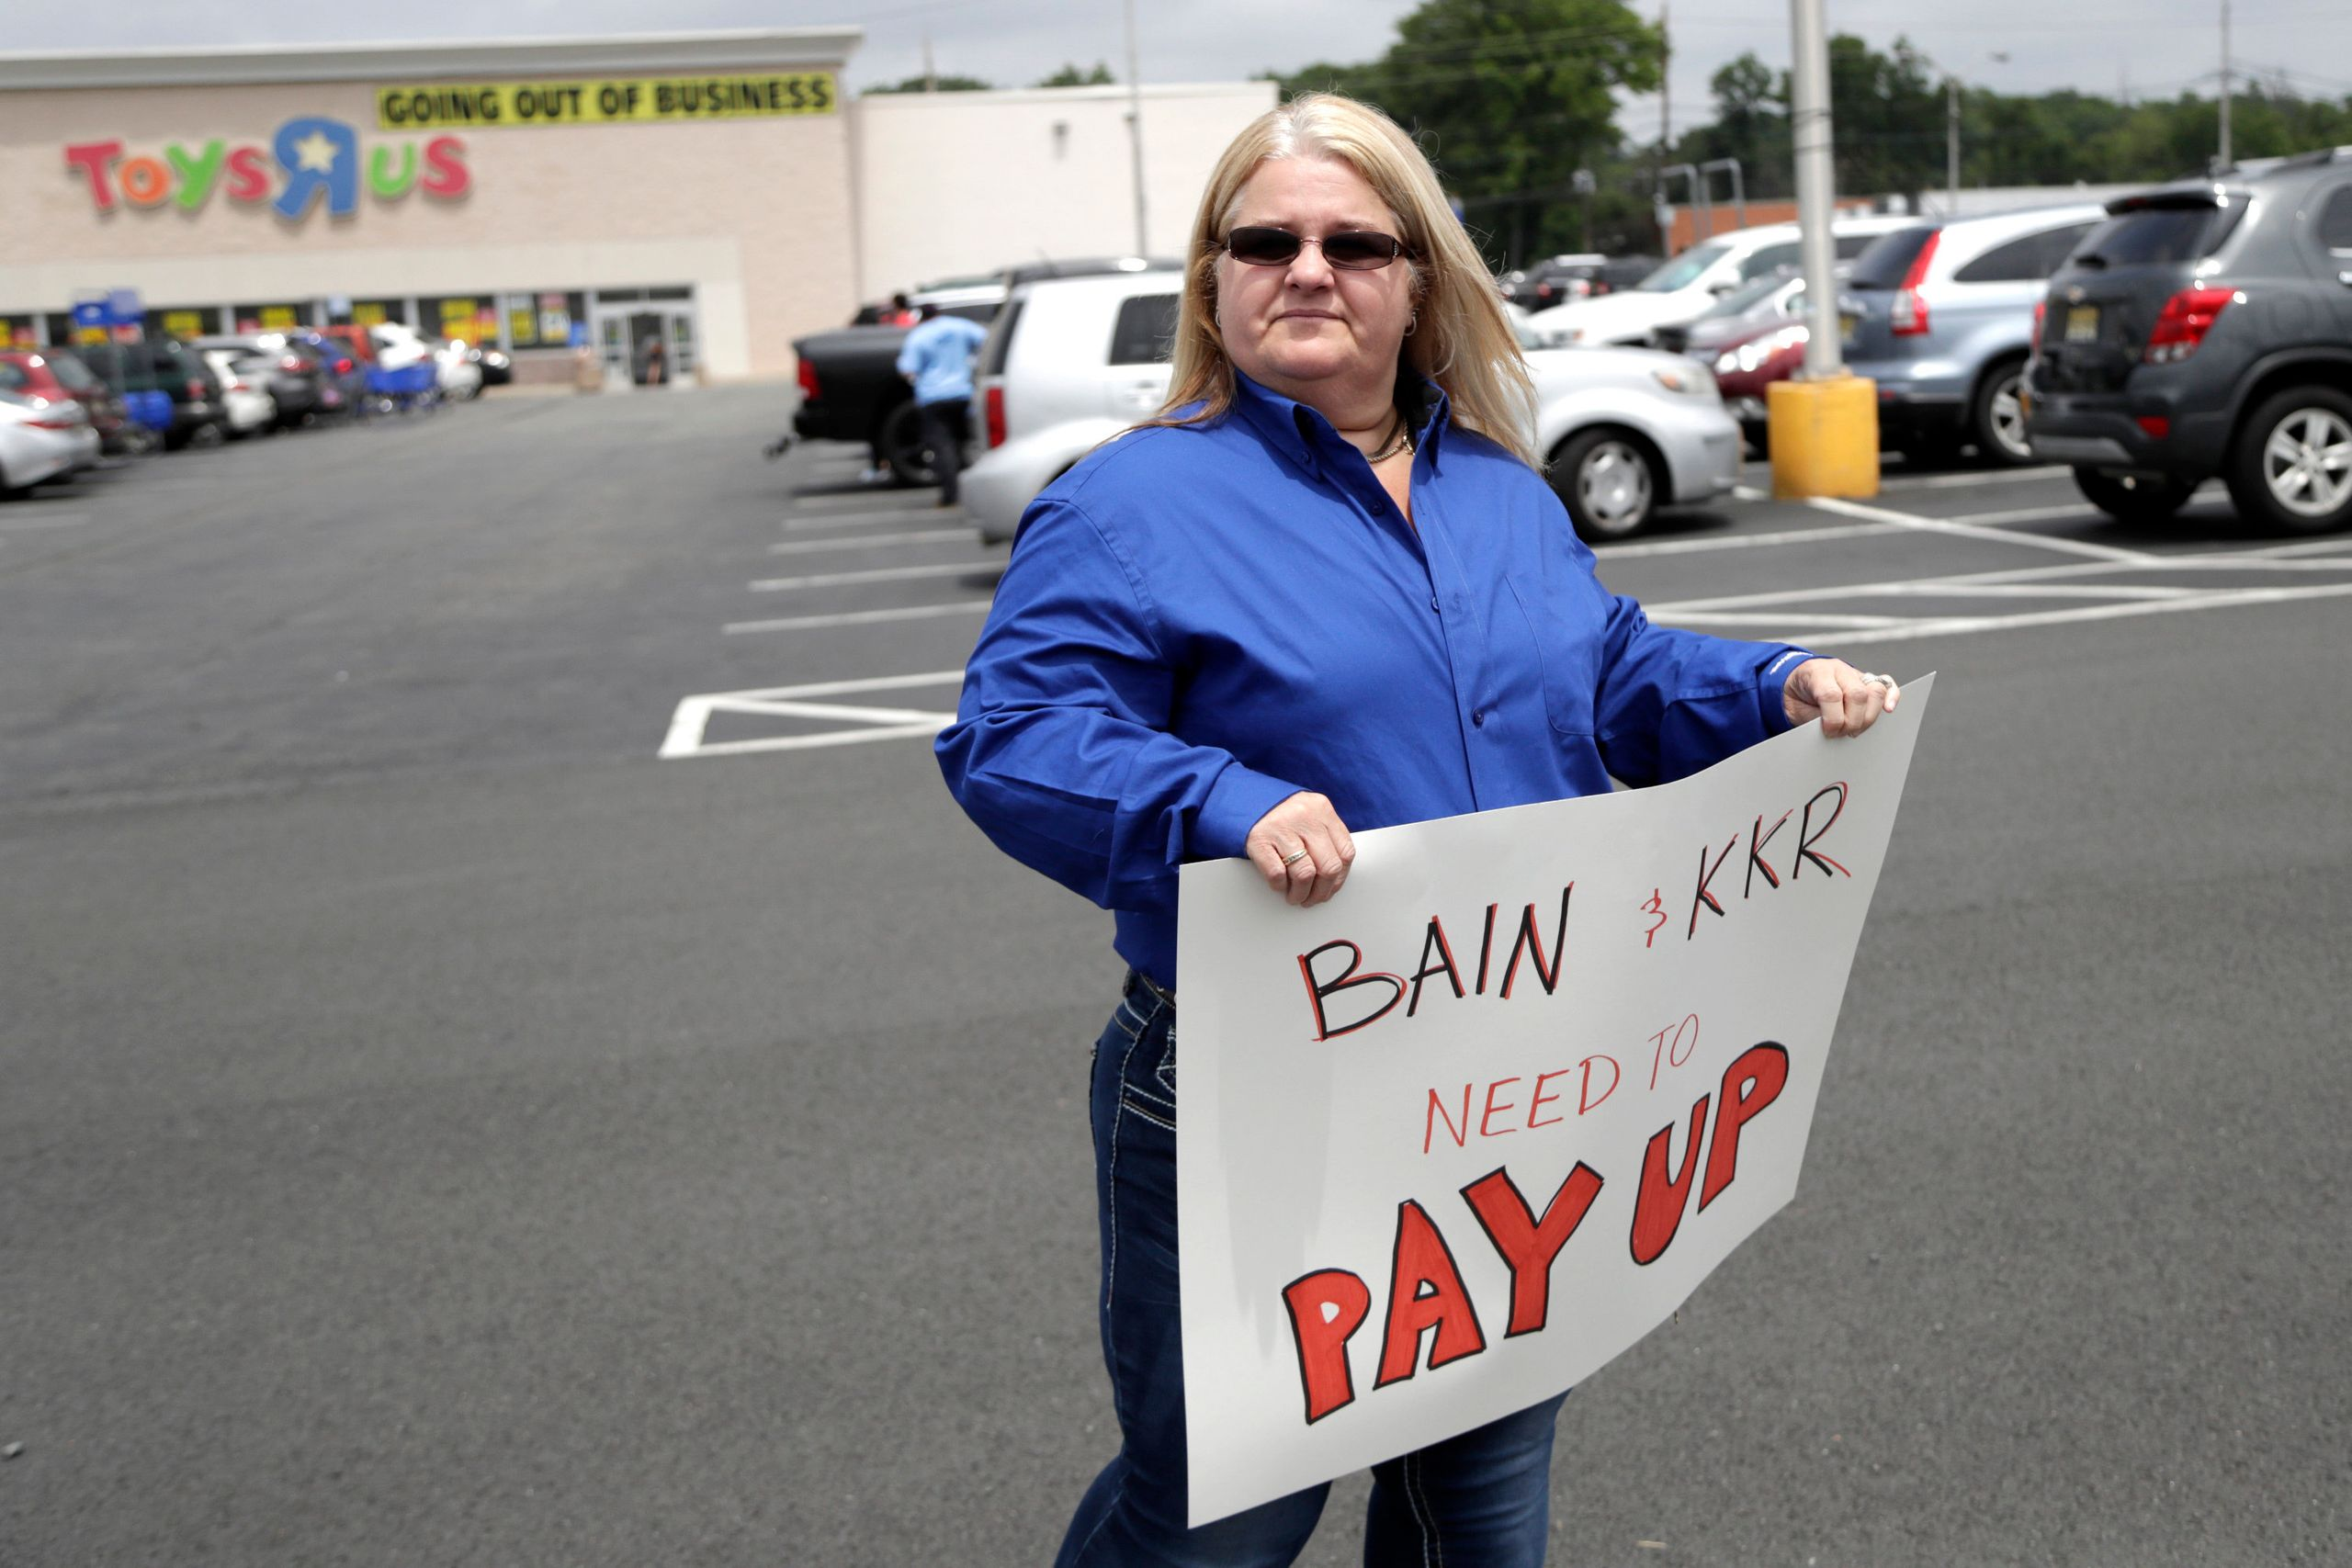 Cheryl Claude, an assistant manager at the Toys R Us store in Woodbridge, New Jersey, holds a sign in front of the Totowa, lo